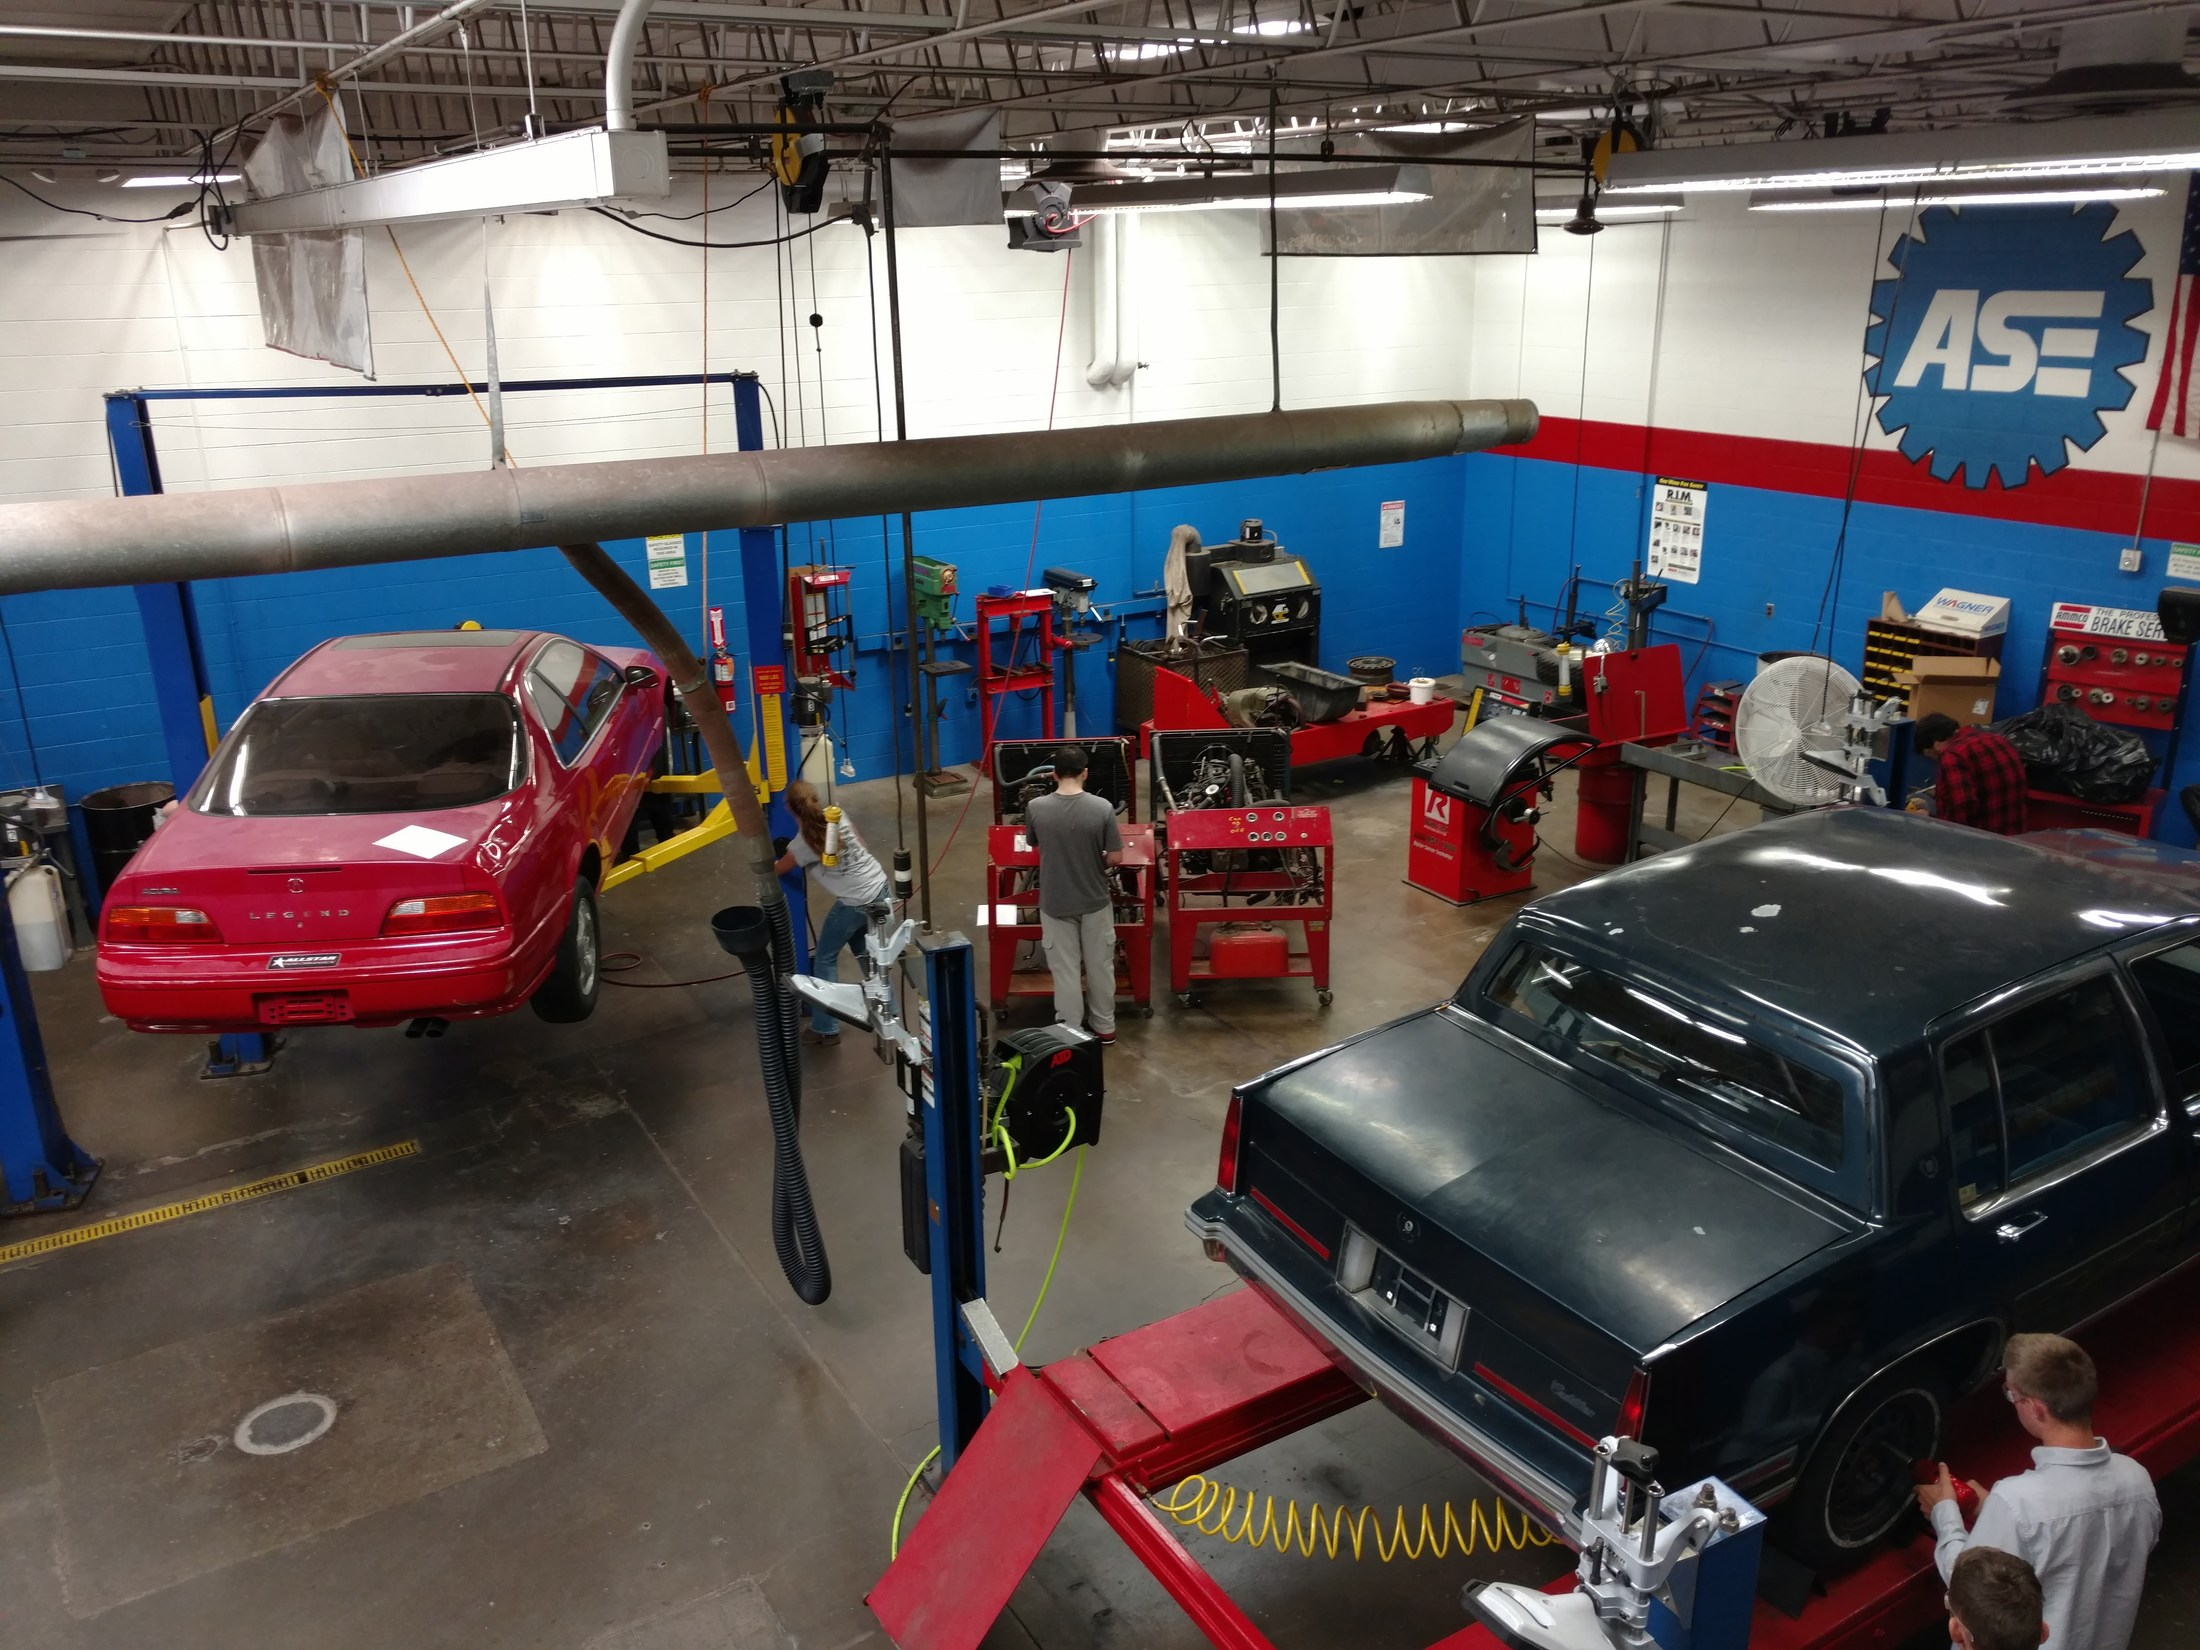 A view of the Tire Service area